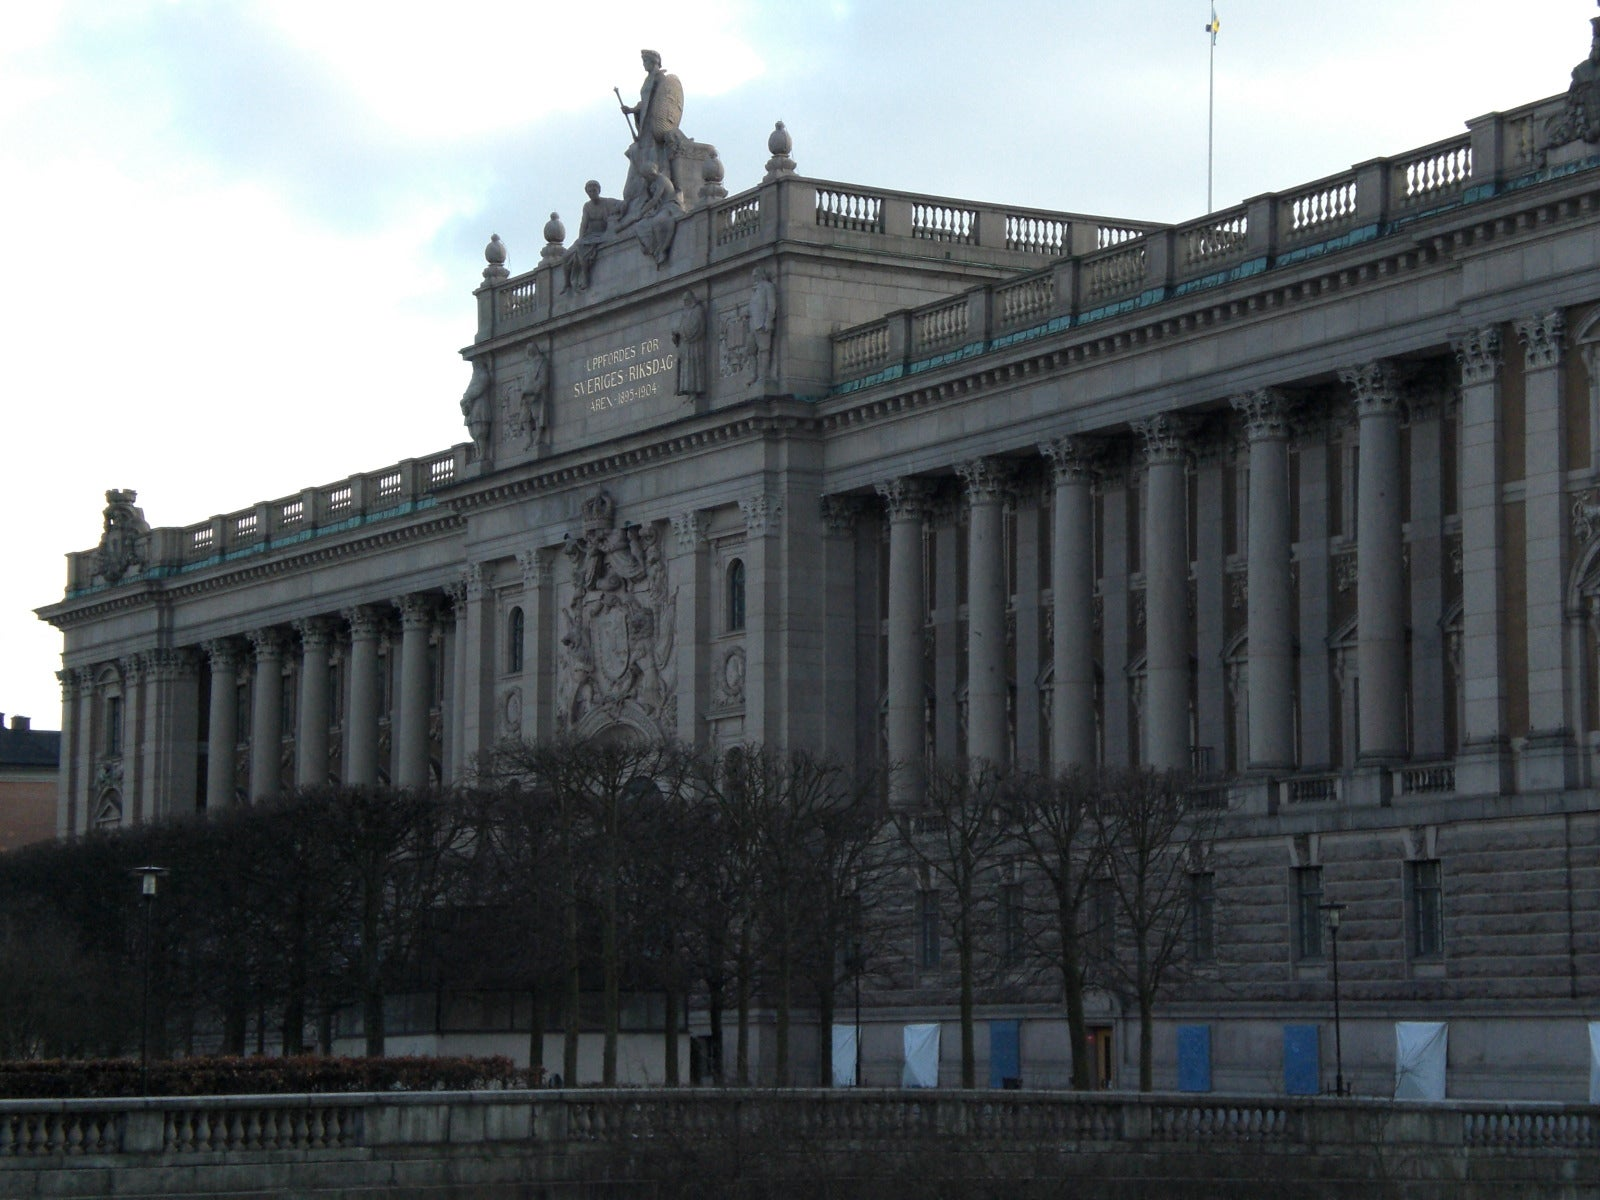 Parliament House (Riksdag)